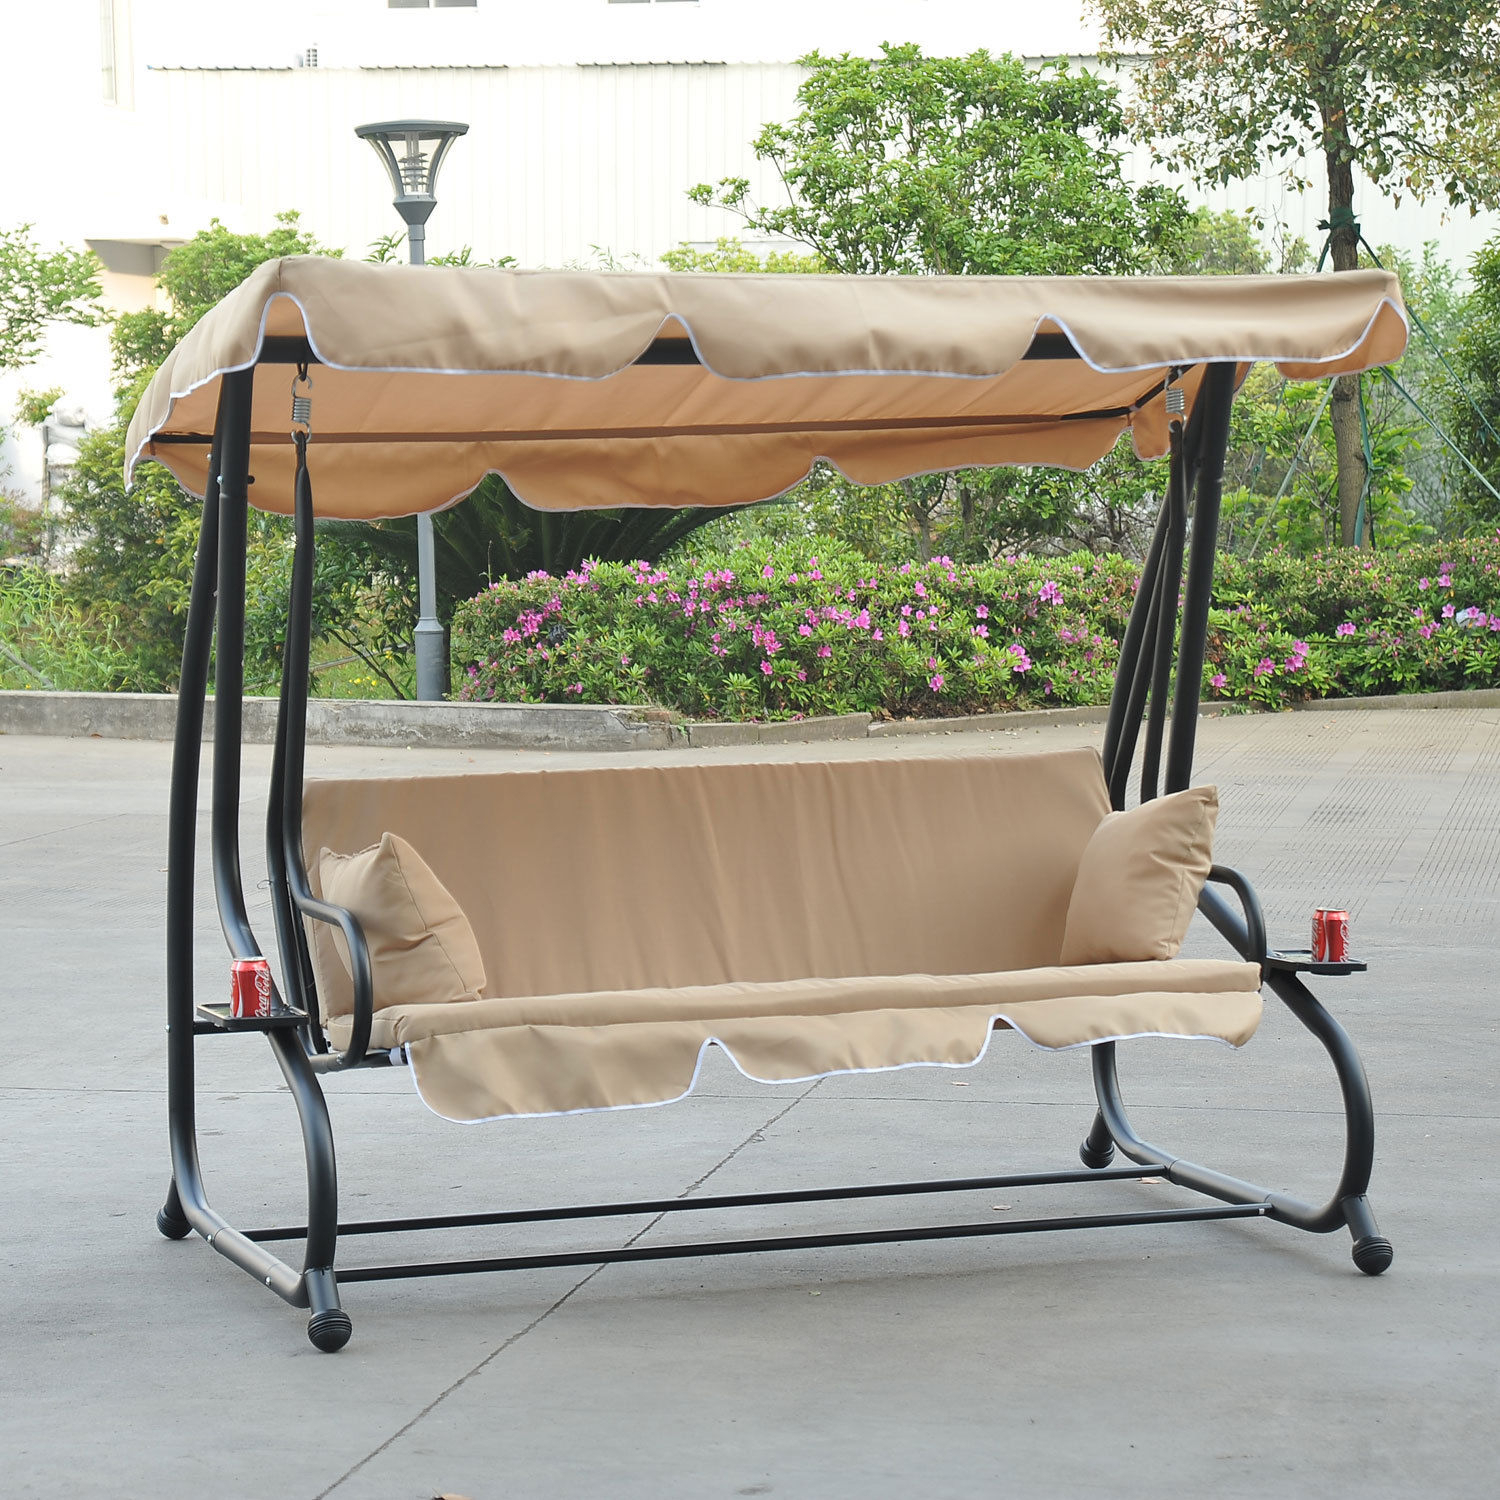 Details About Outdoor 3 Person Patio Porch Swing Hammock Bench Canopy Loveseat Convertible Bed In 2 Person Hammock Porch Swing Patio Outdoor Hanging Loveseat Canopy Glider Swings (View 12 of 25)